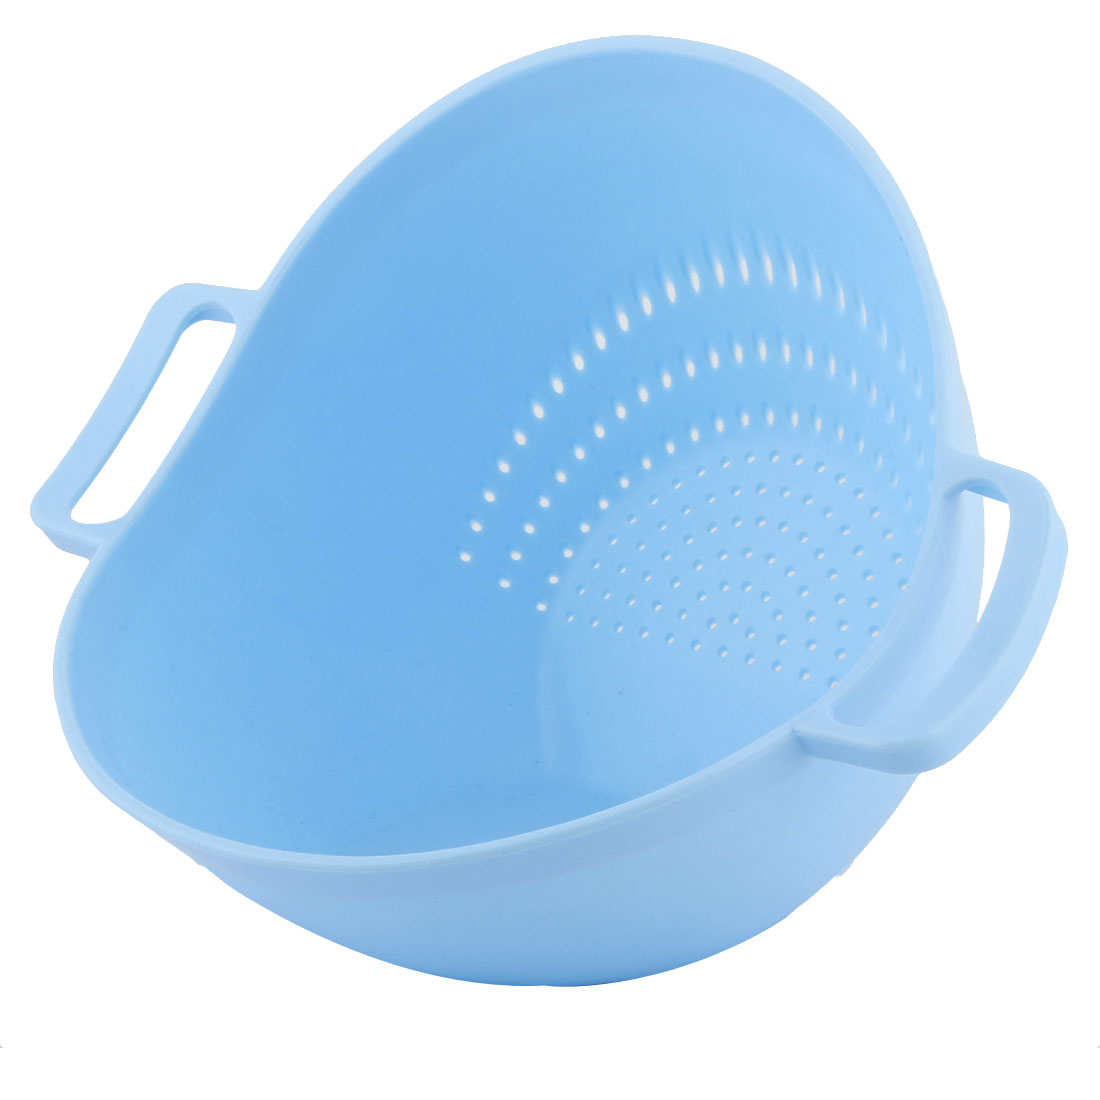 Kitchenware Home Plastic Wash Rice Sieve Vegetables Basin Colander Light Blue